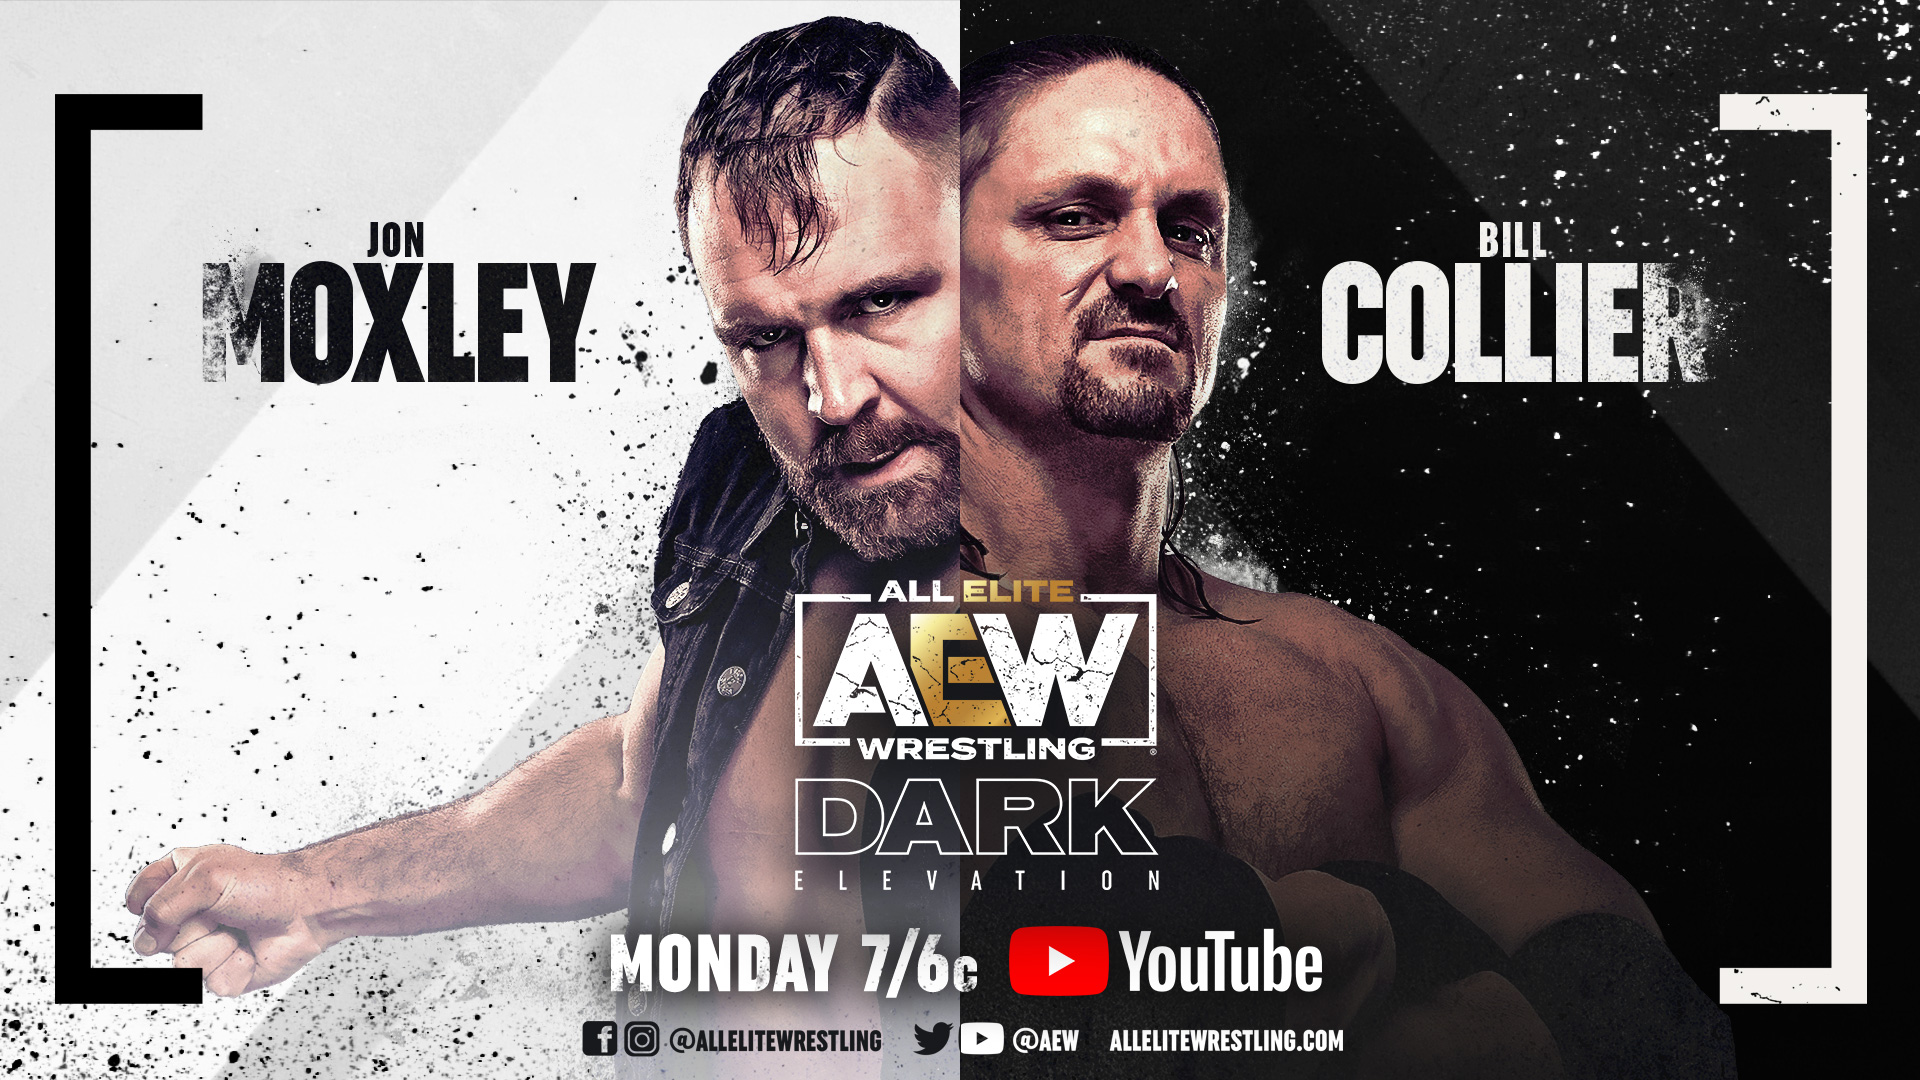 AEW Dark: Elevation Results (3/29): Jon Moxley, Thunder Rosa, Ethan Page In Action